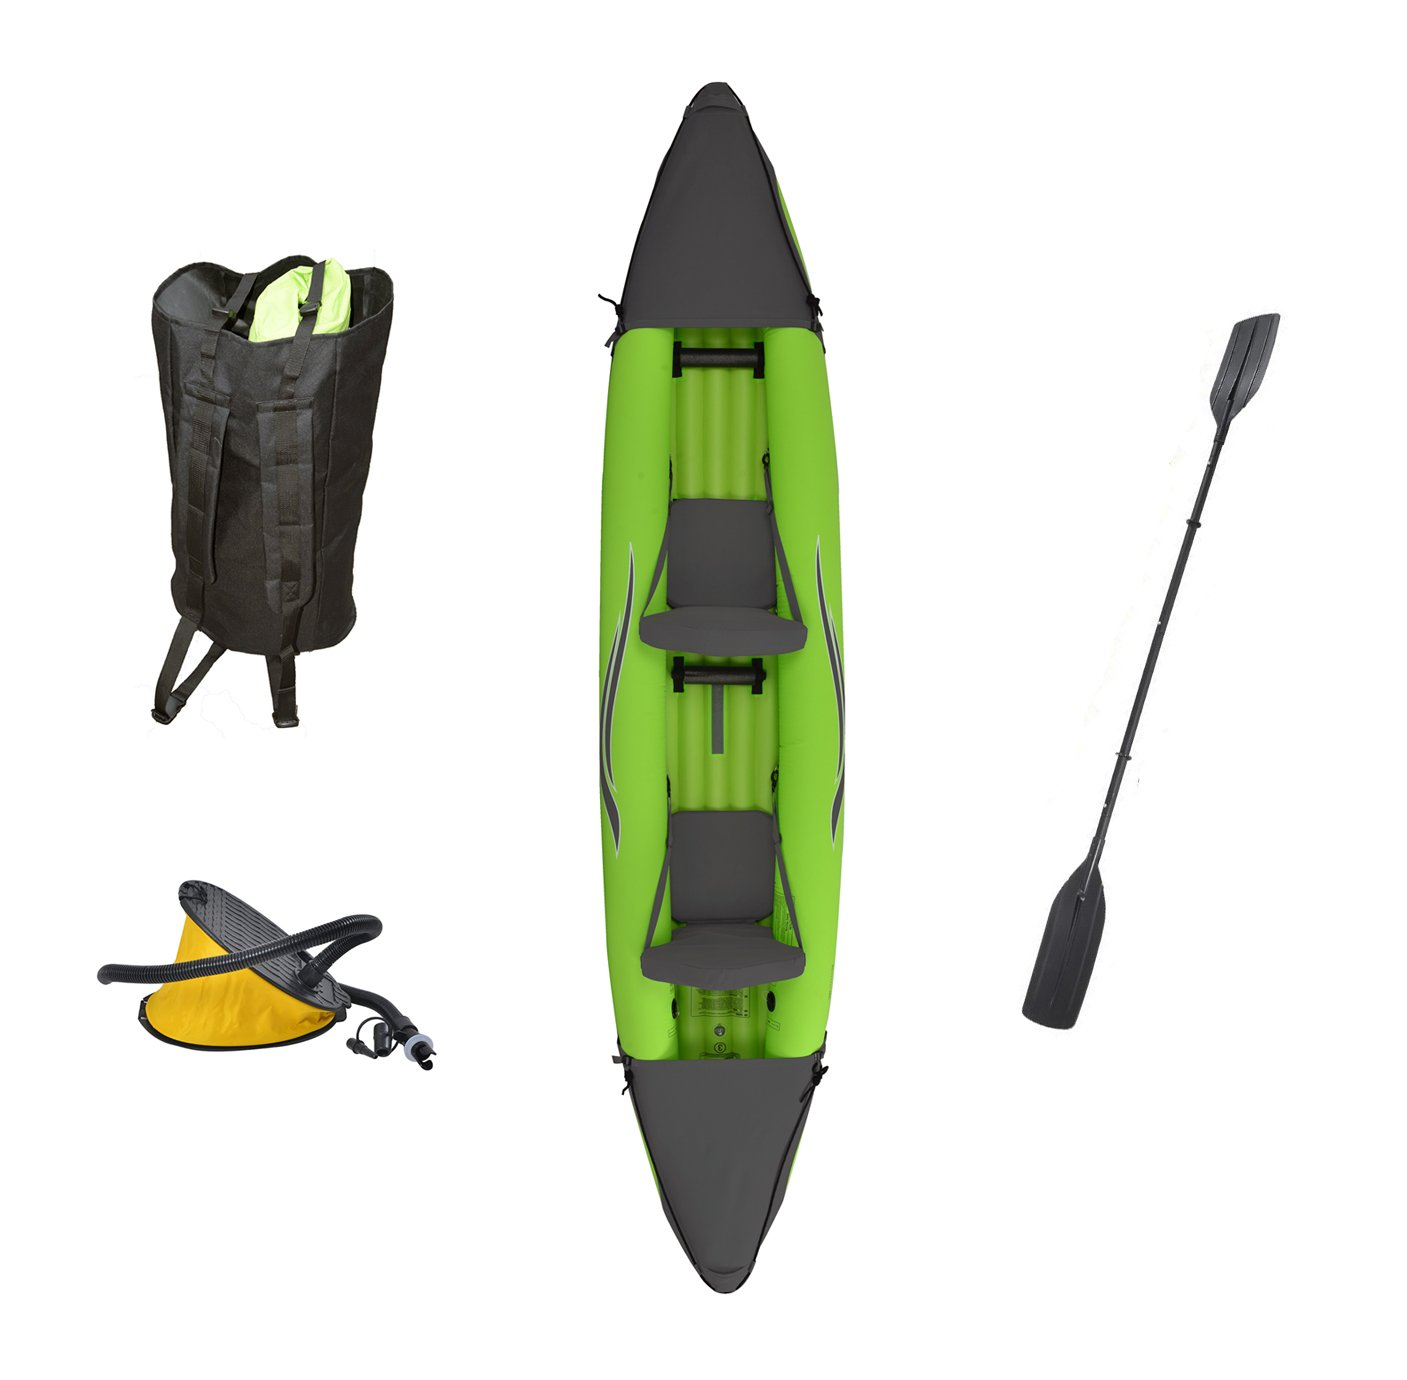 Outdoor Tuff Stinger 4 OTF-4252PK Inflatable Two-Person Sport Kayak